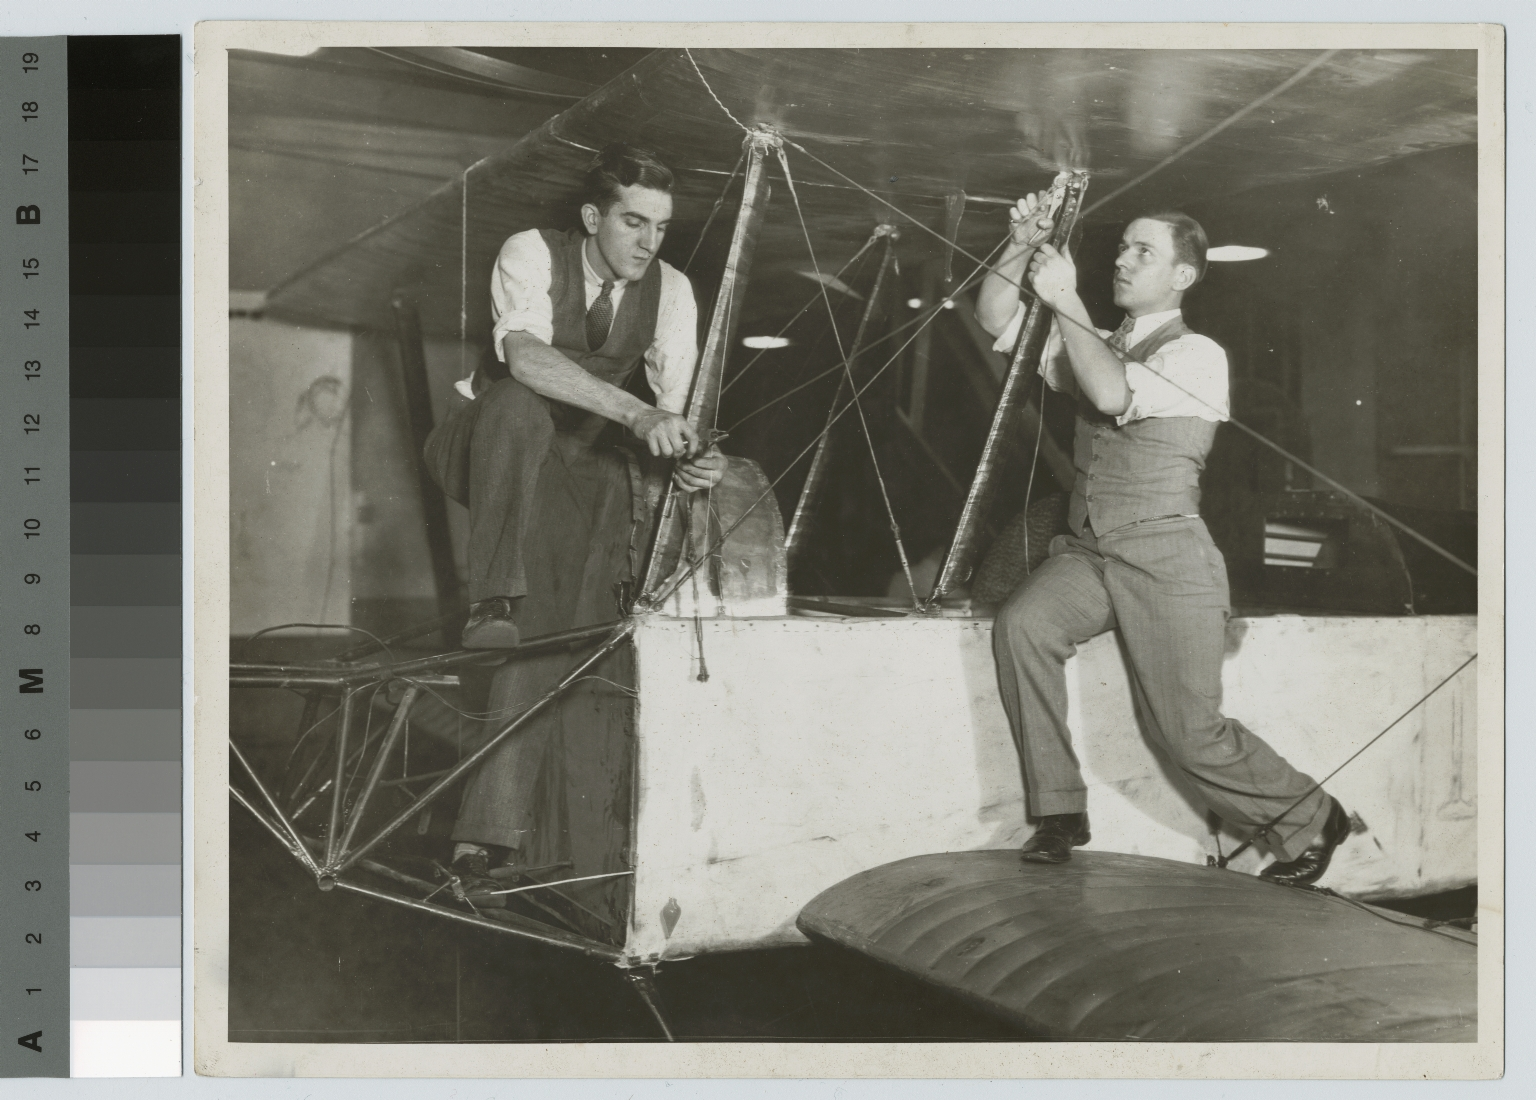 Students work on an airplane rigging, School of Industrial Arts, Rochester Athenaeum and Mechanics Institute